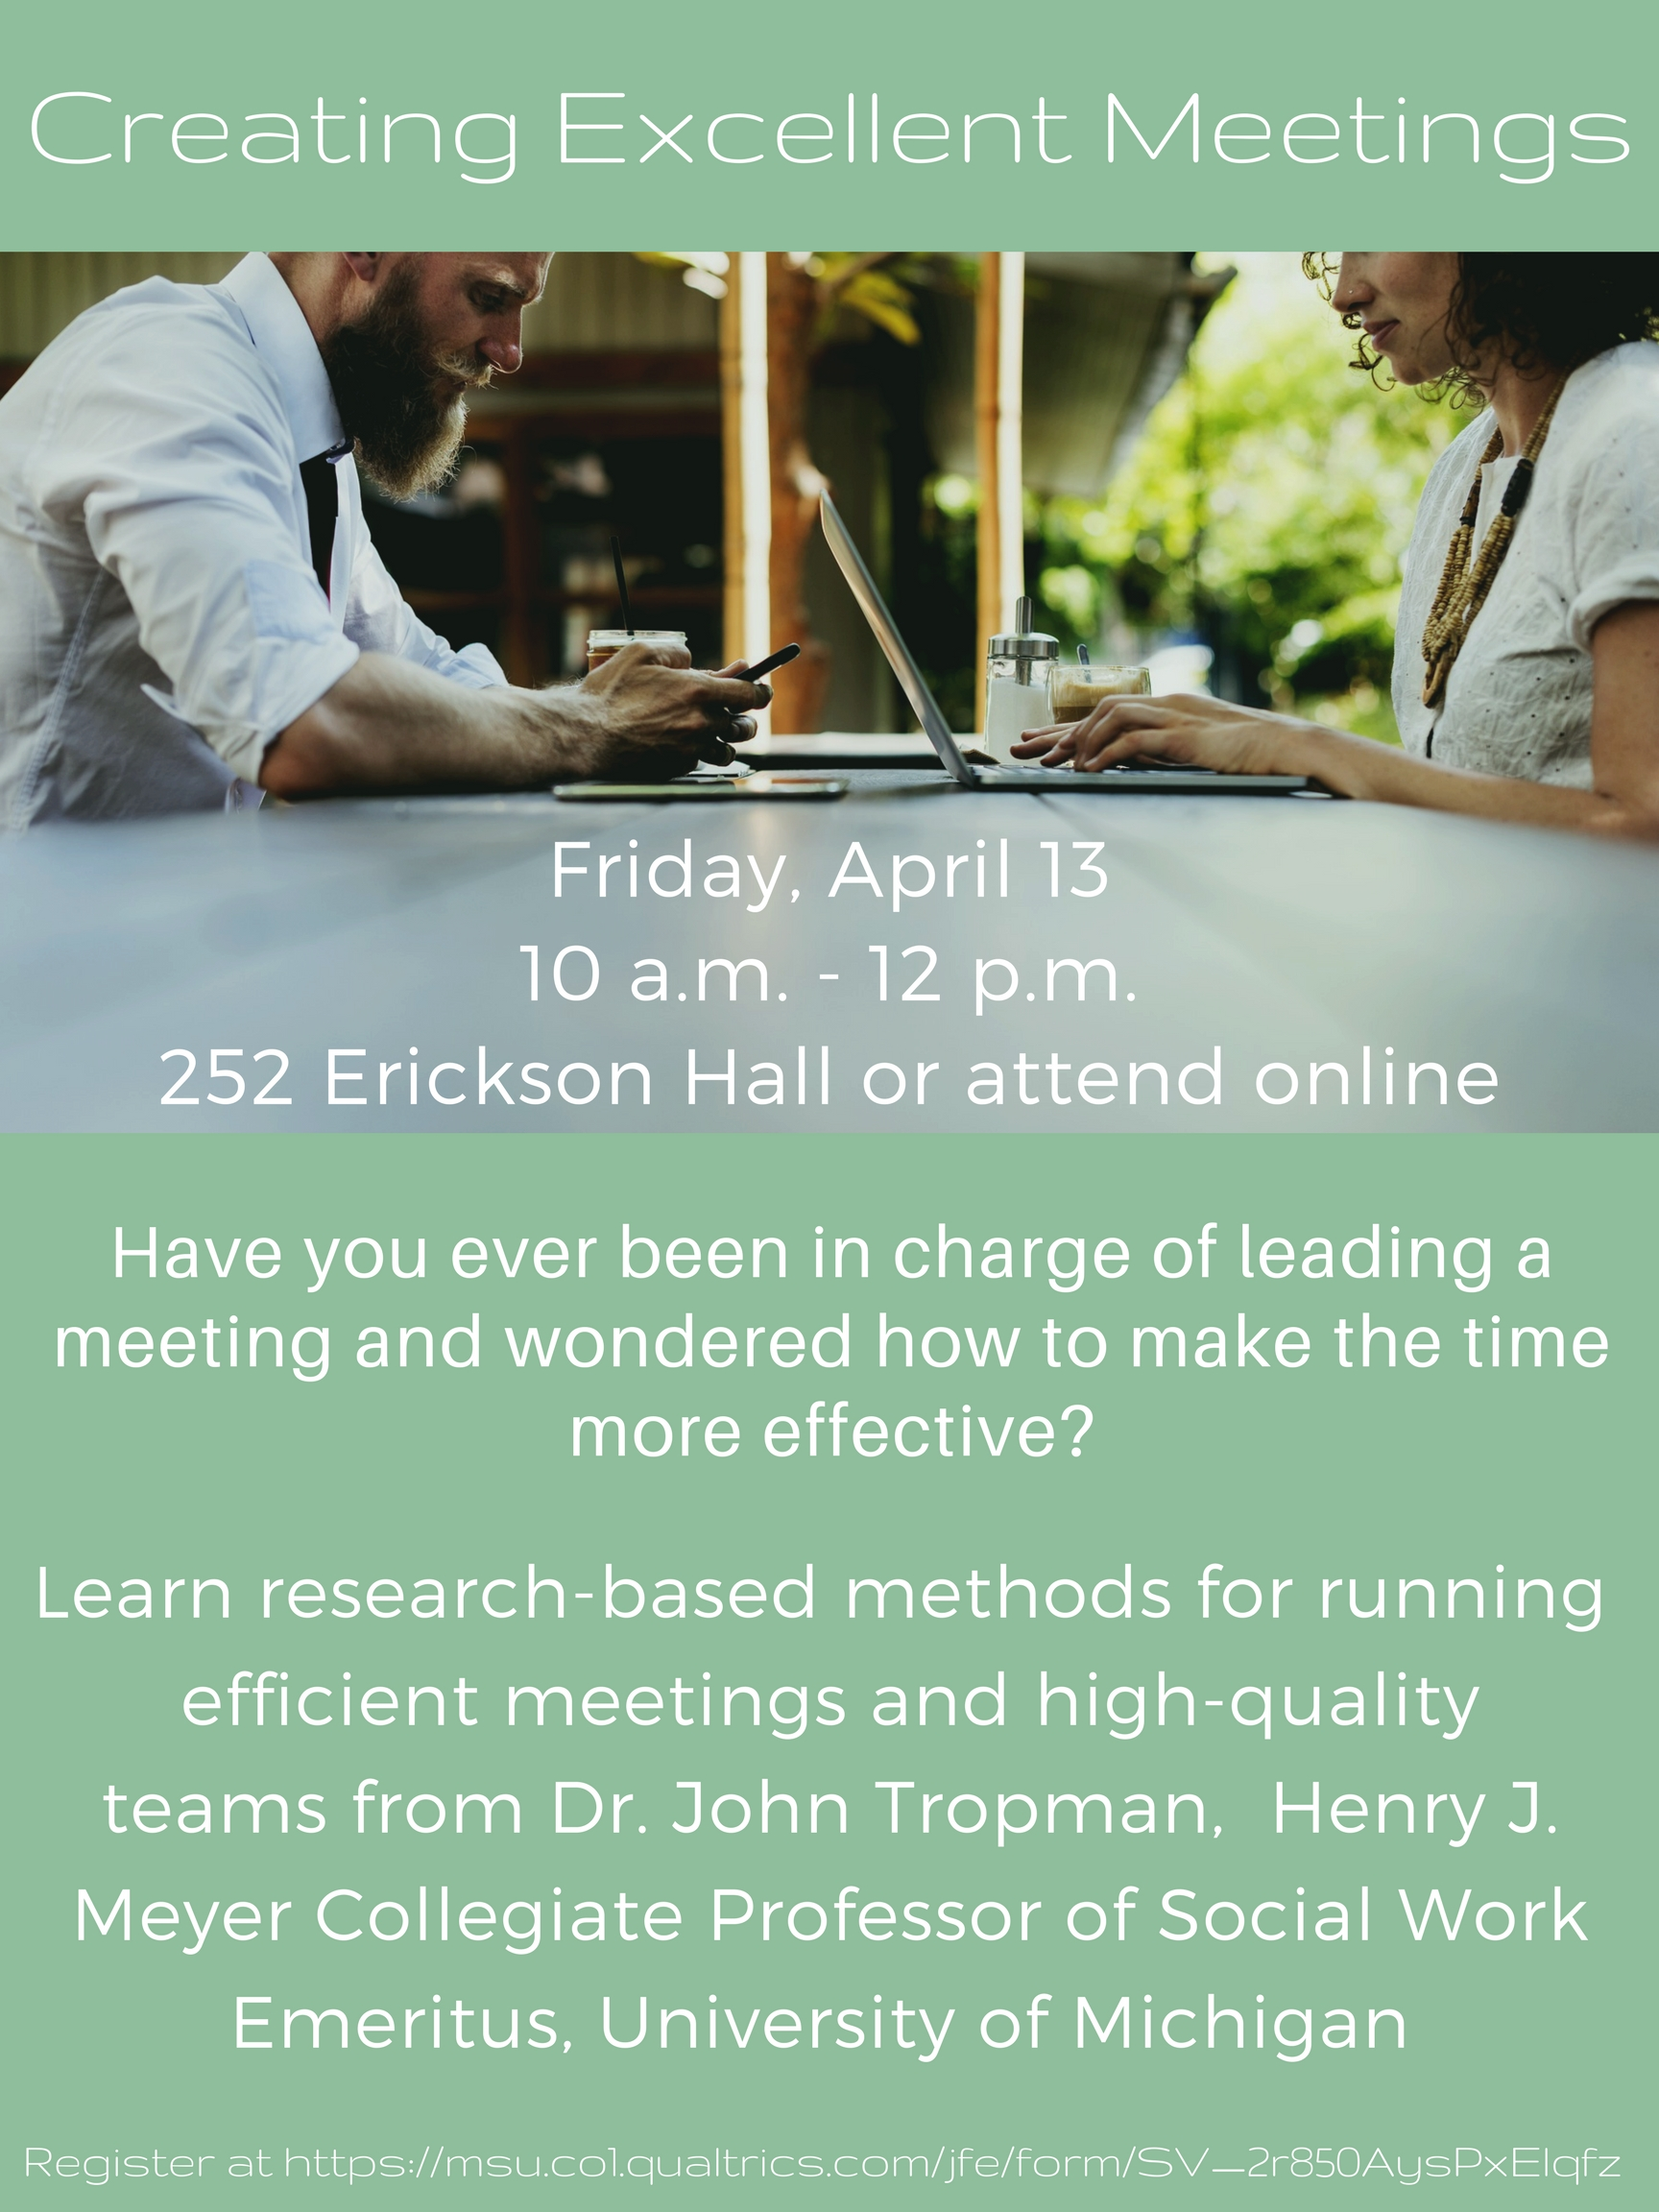 Creating Excellent Meetings. Friday, April 13, 2018 - 10:00am to 12:00pm. 252 Erickson Hall